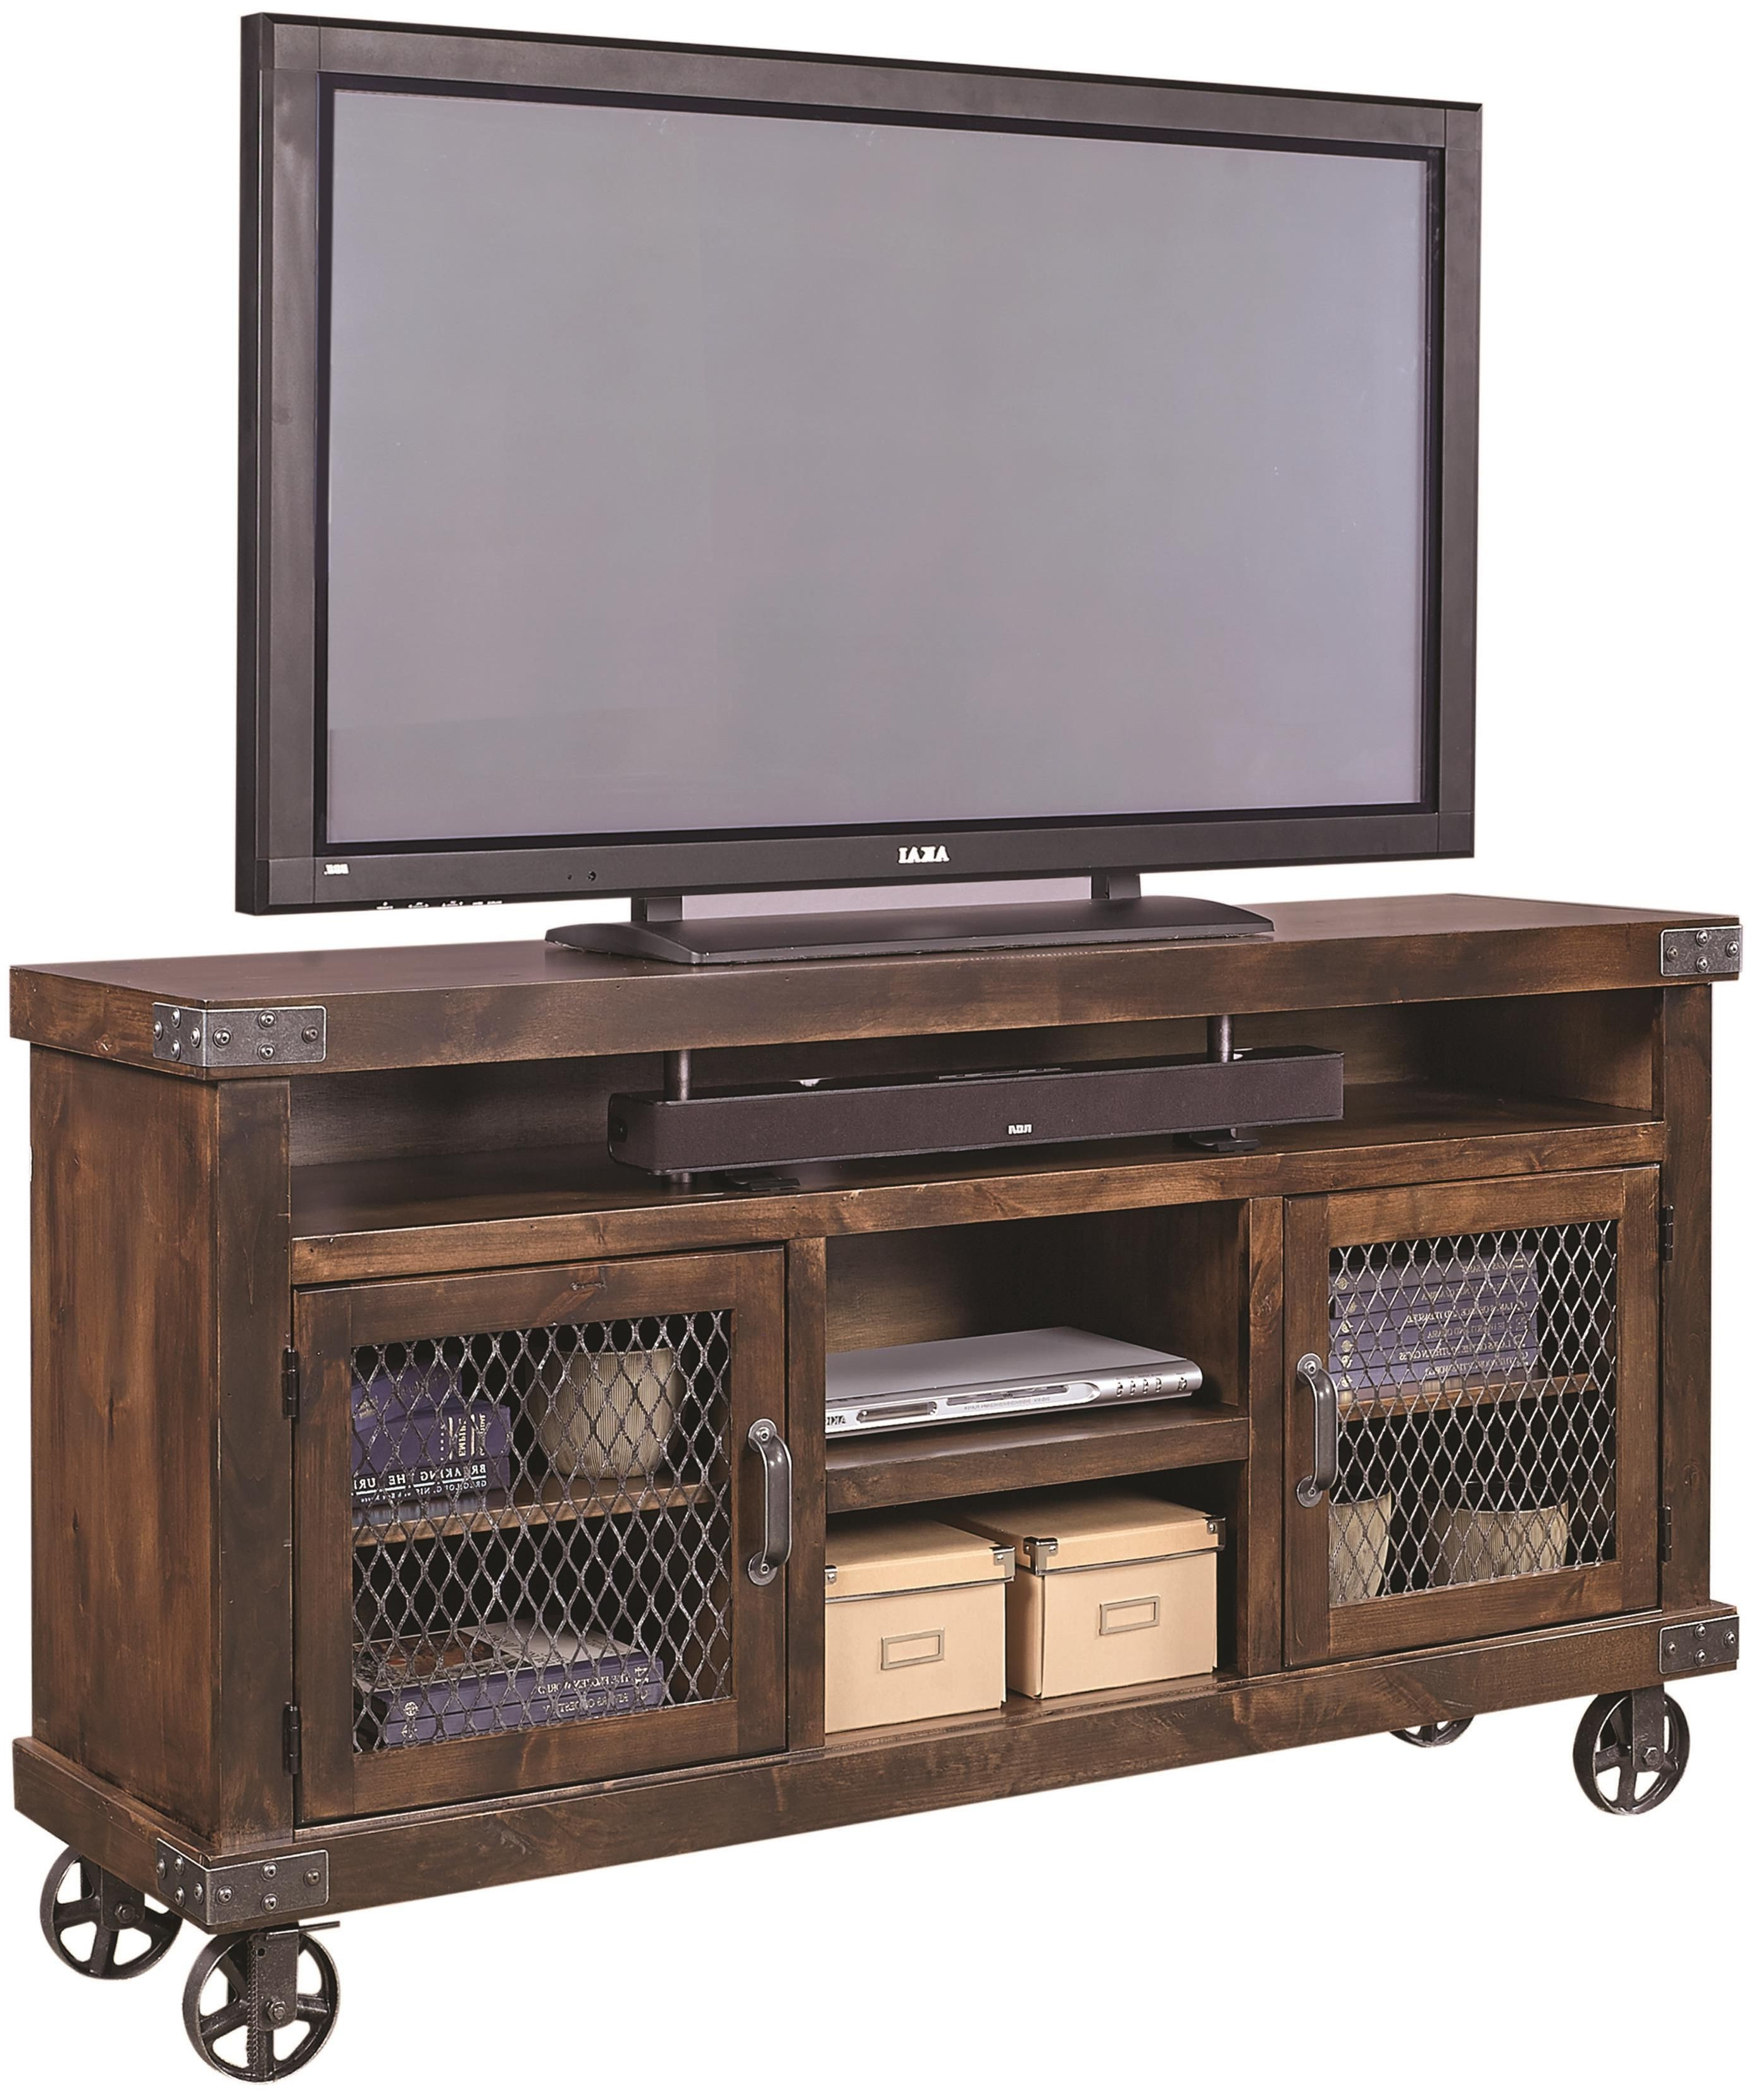 Metal Corner Tv Stand Industrial 65 Console With Casters In Well Known Industrial Corner Tv Stands (View 15 of 20)